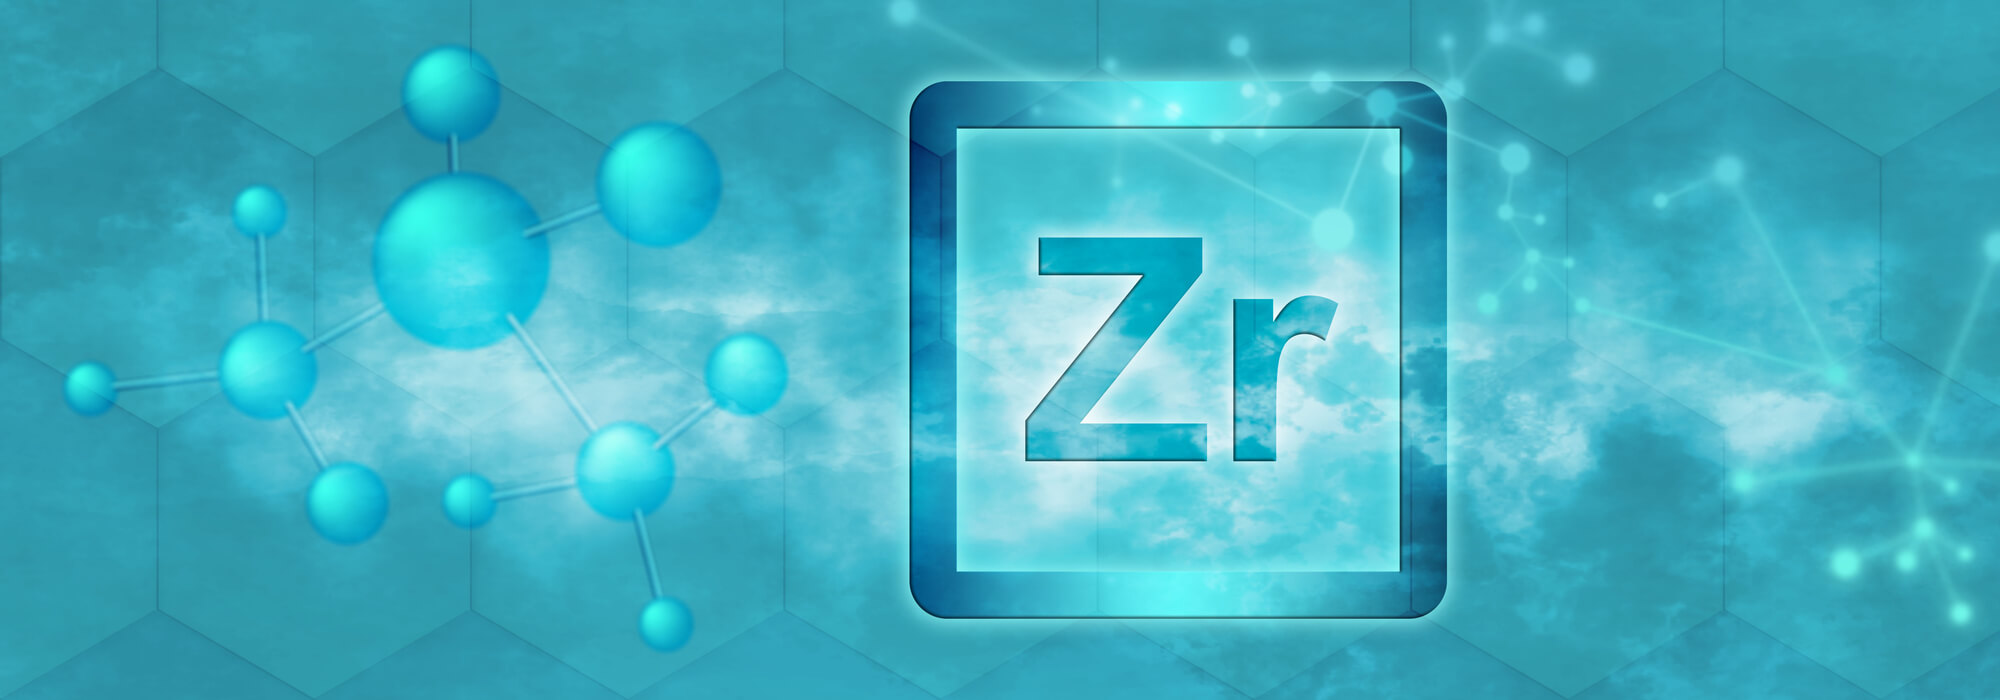 Why use Zirconium?